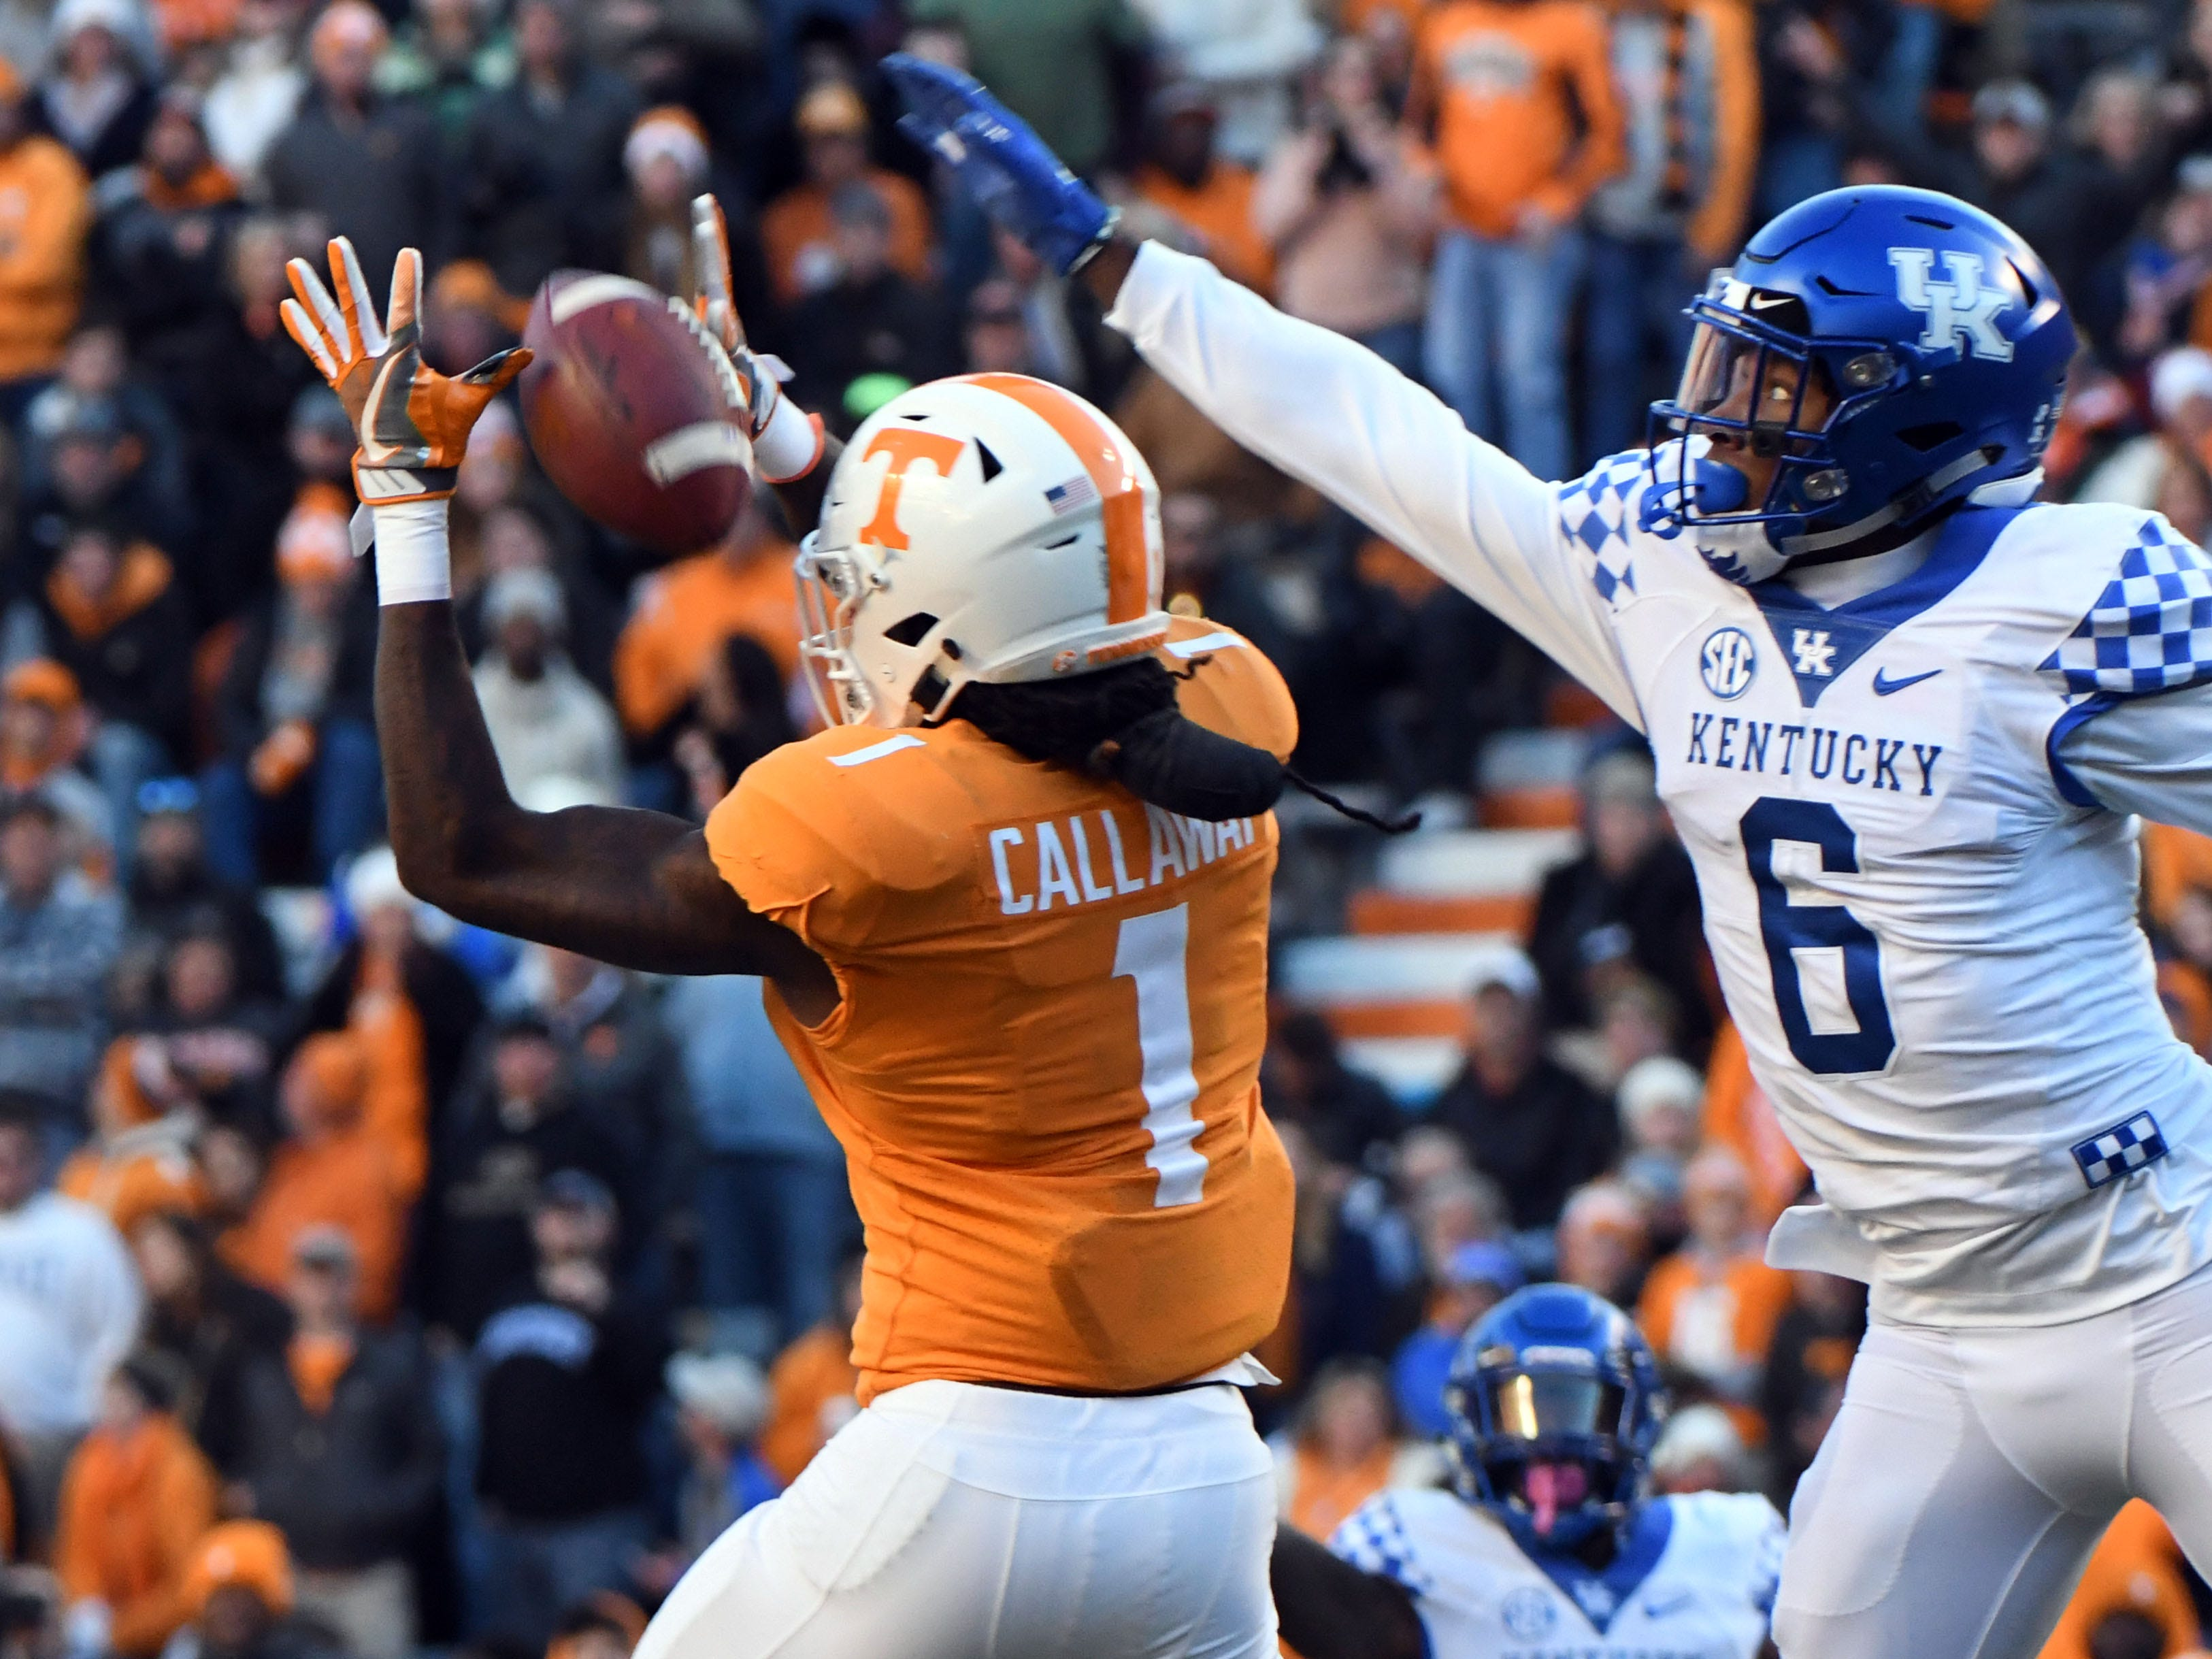 An incomplete pass intended for Tennessee wide receiver Marquez Callaway (1) while defended by Kentucky cornerback Lonnie Johnson Jr. (6) during first half action in the Kentucky game Saturday, November 10, 2018 at Neyland Stadium in Knoxville, Tenn.